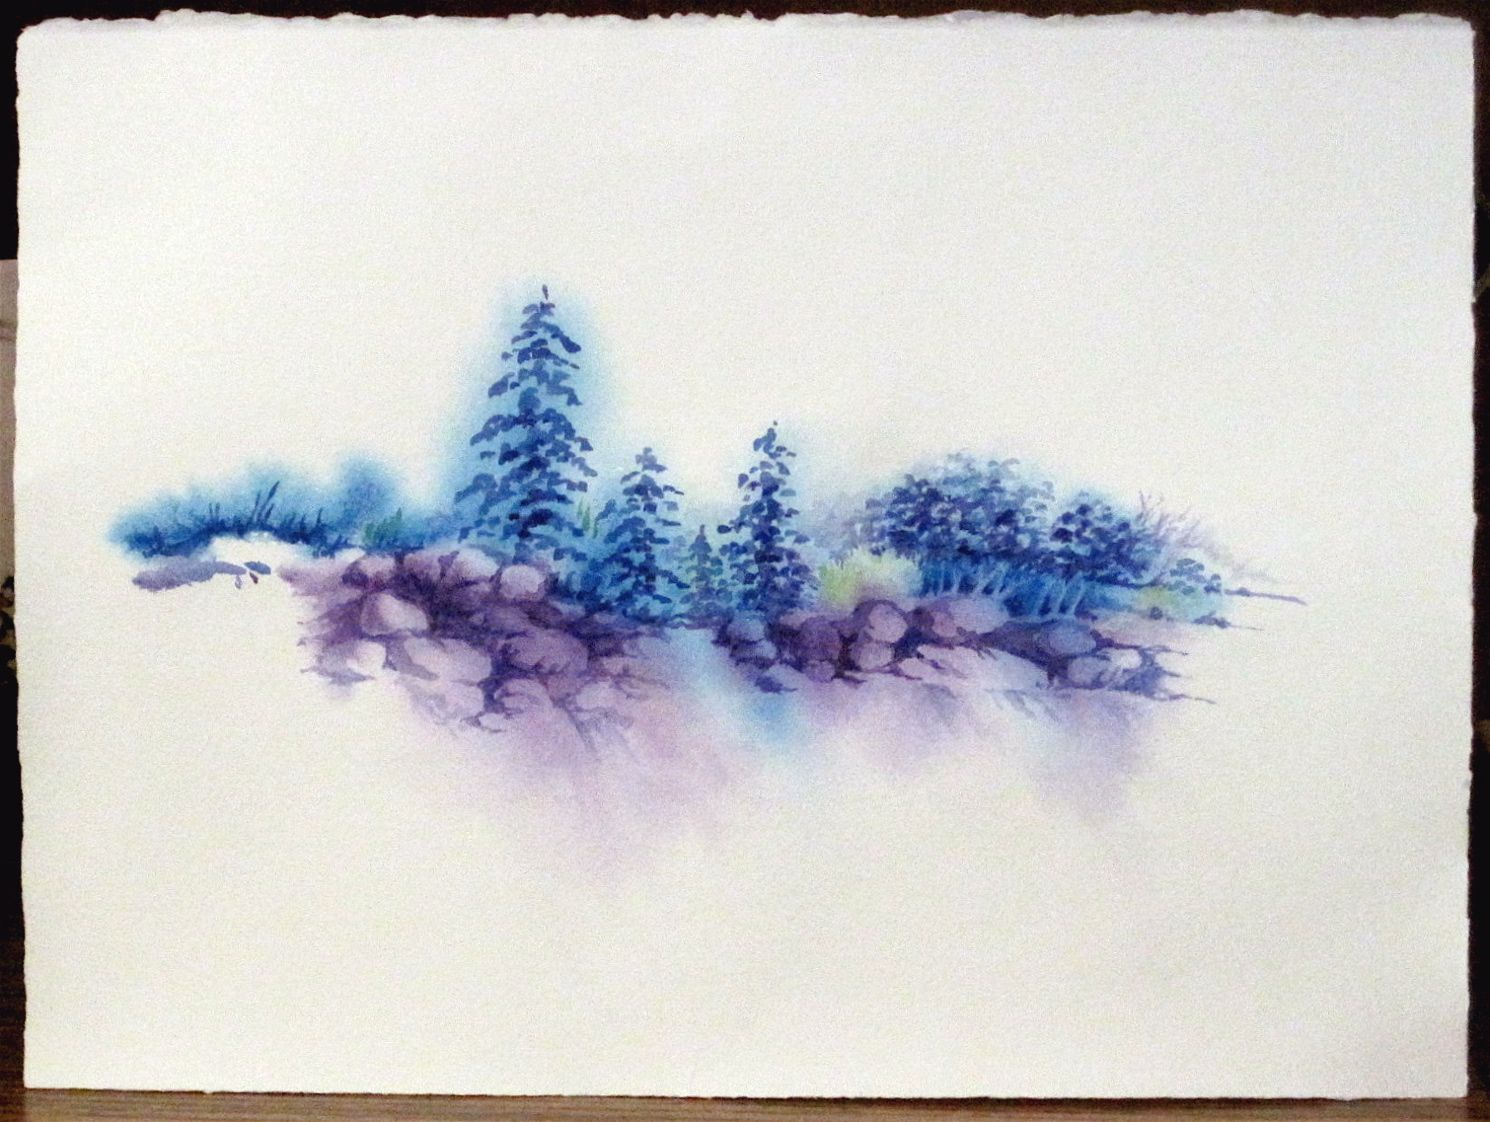 Ren e goularte art in process thoughts on the creative for Cool watercolour